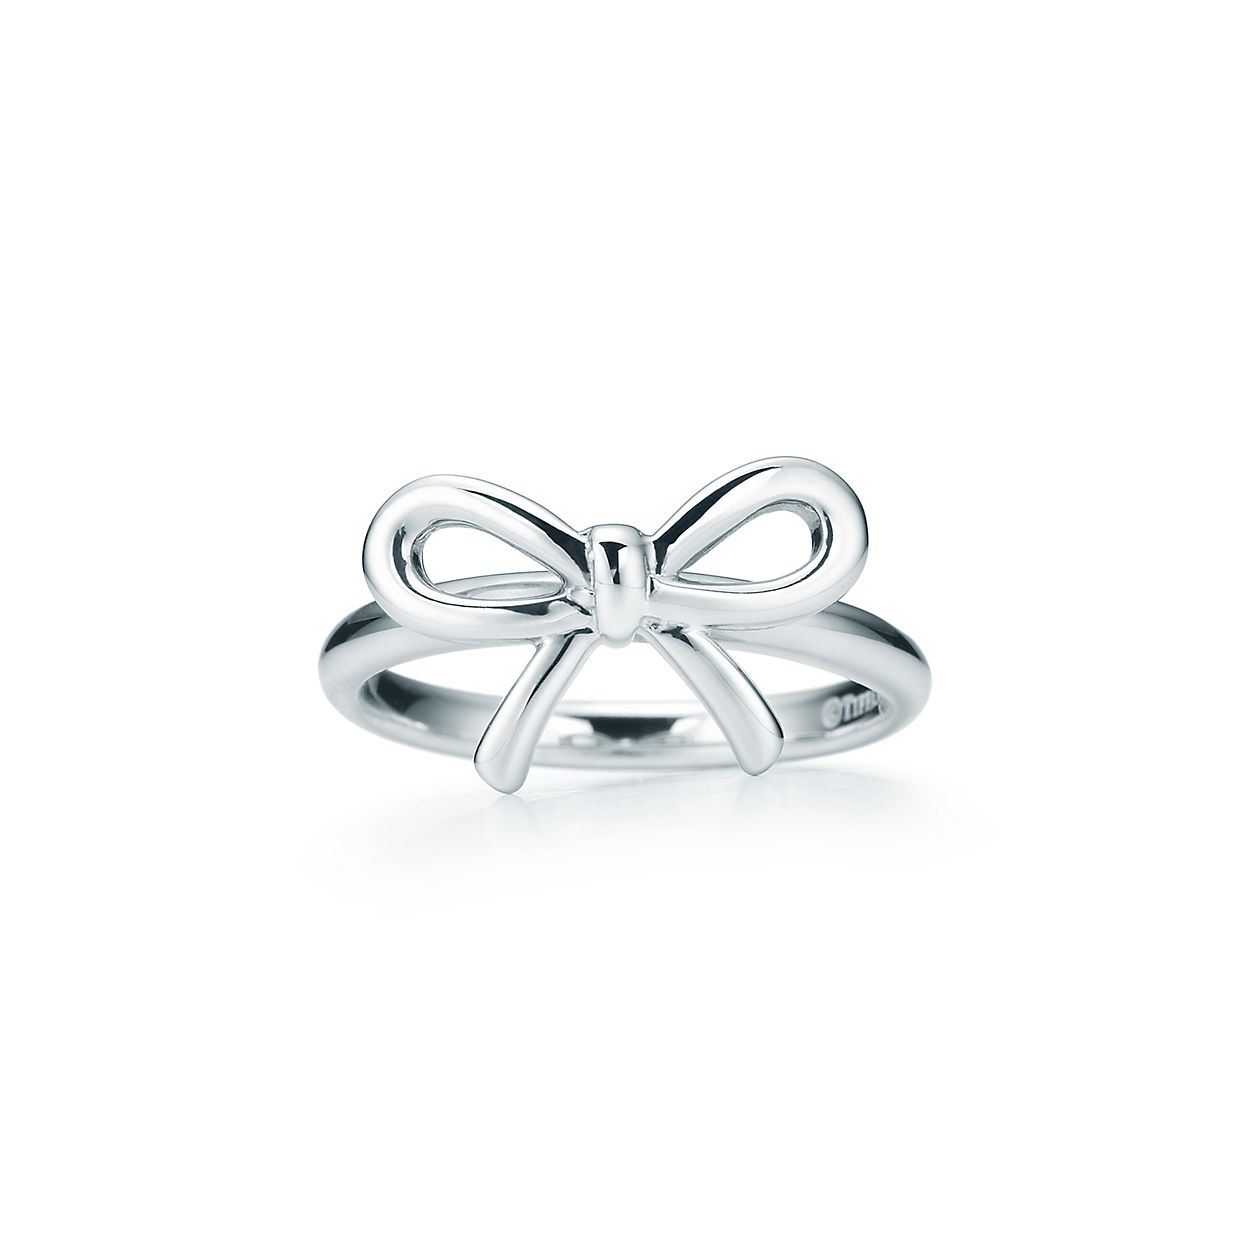 Tiffany Bow ring in sterling silver. | Tiffany & Co.